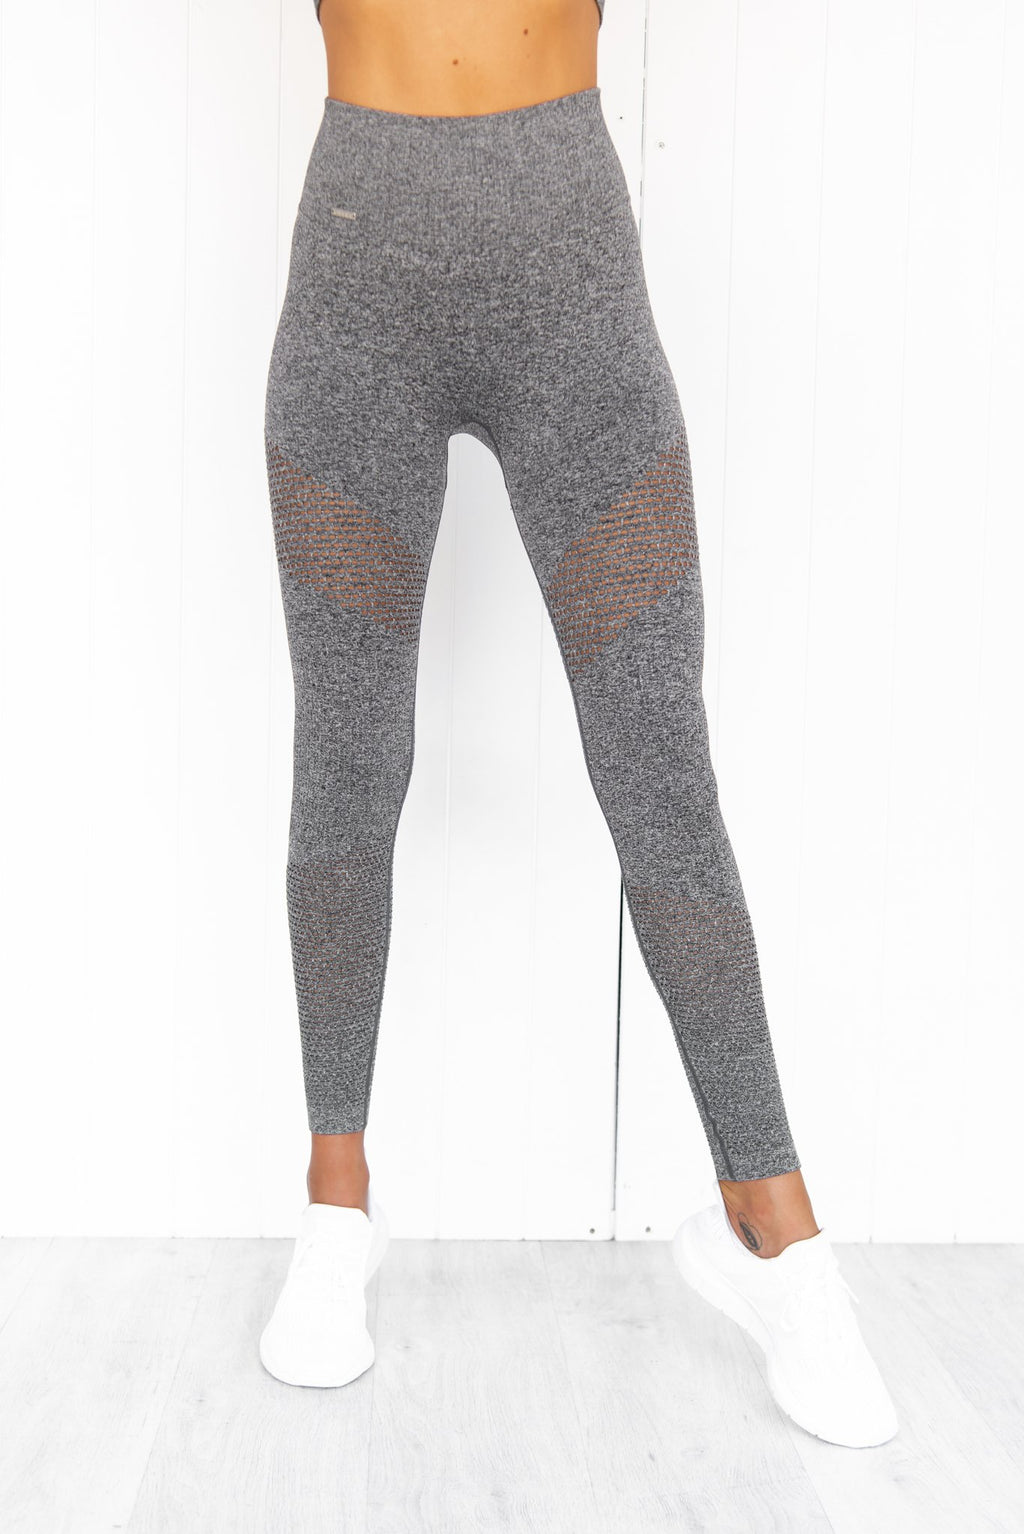 Grey Melange Boost Seamless Tights - PURE DASH